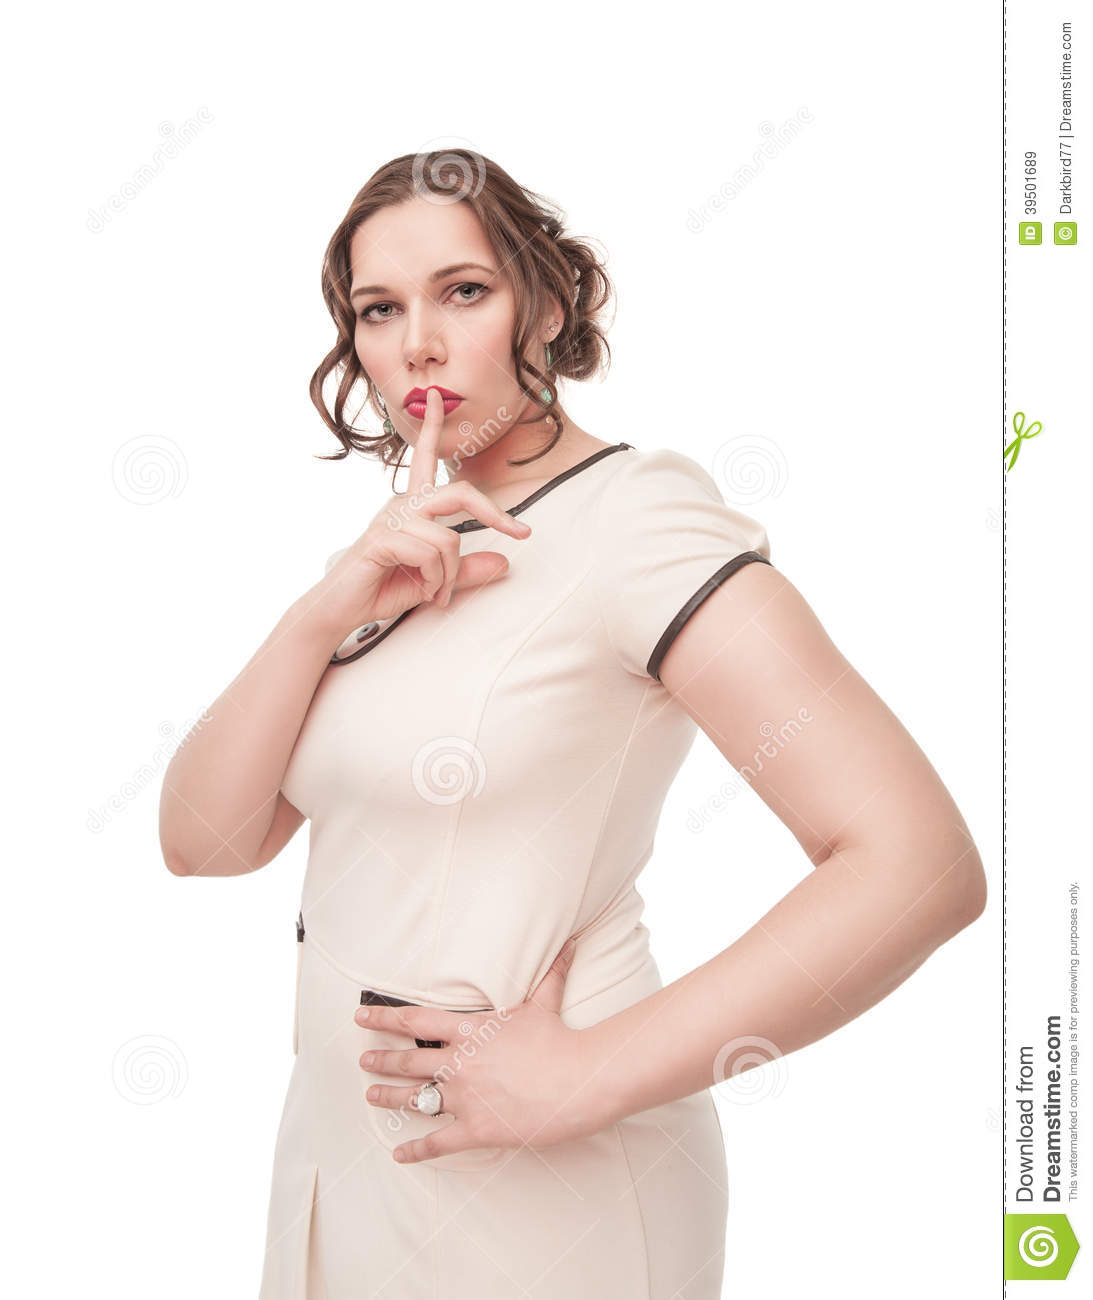 Beautiful plus size woman showing quiet sign